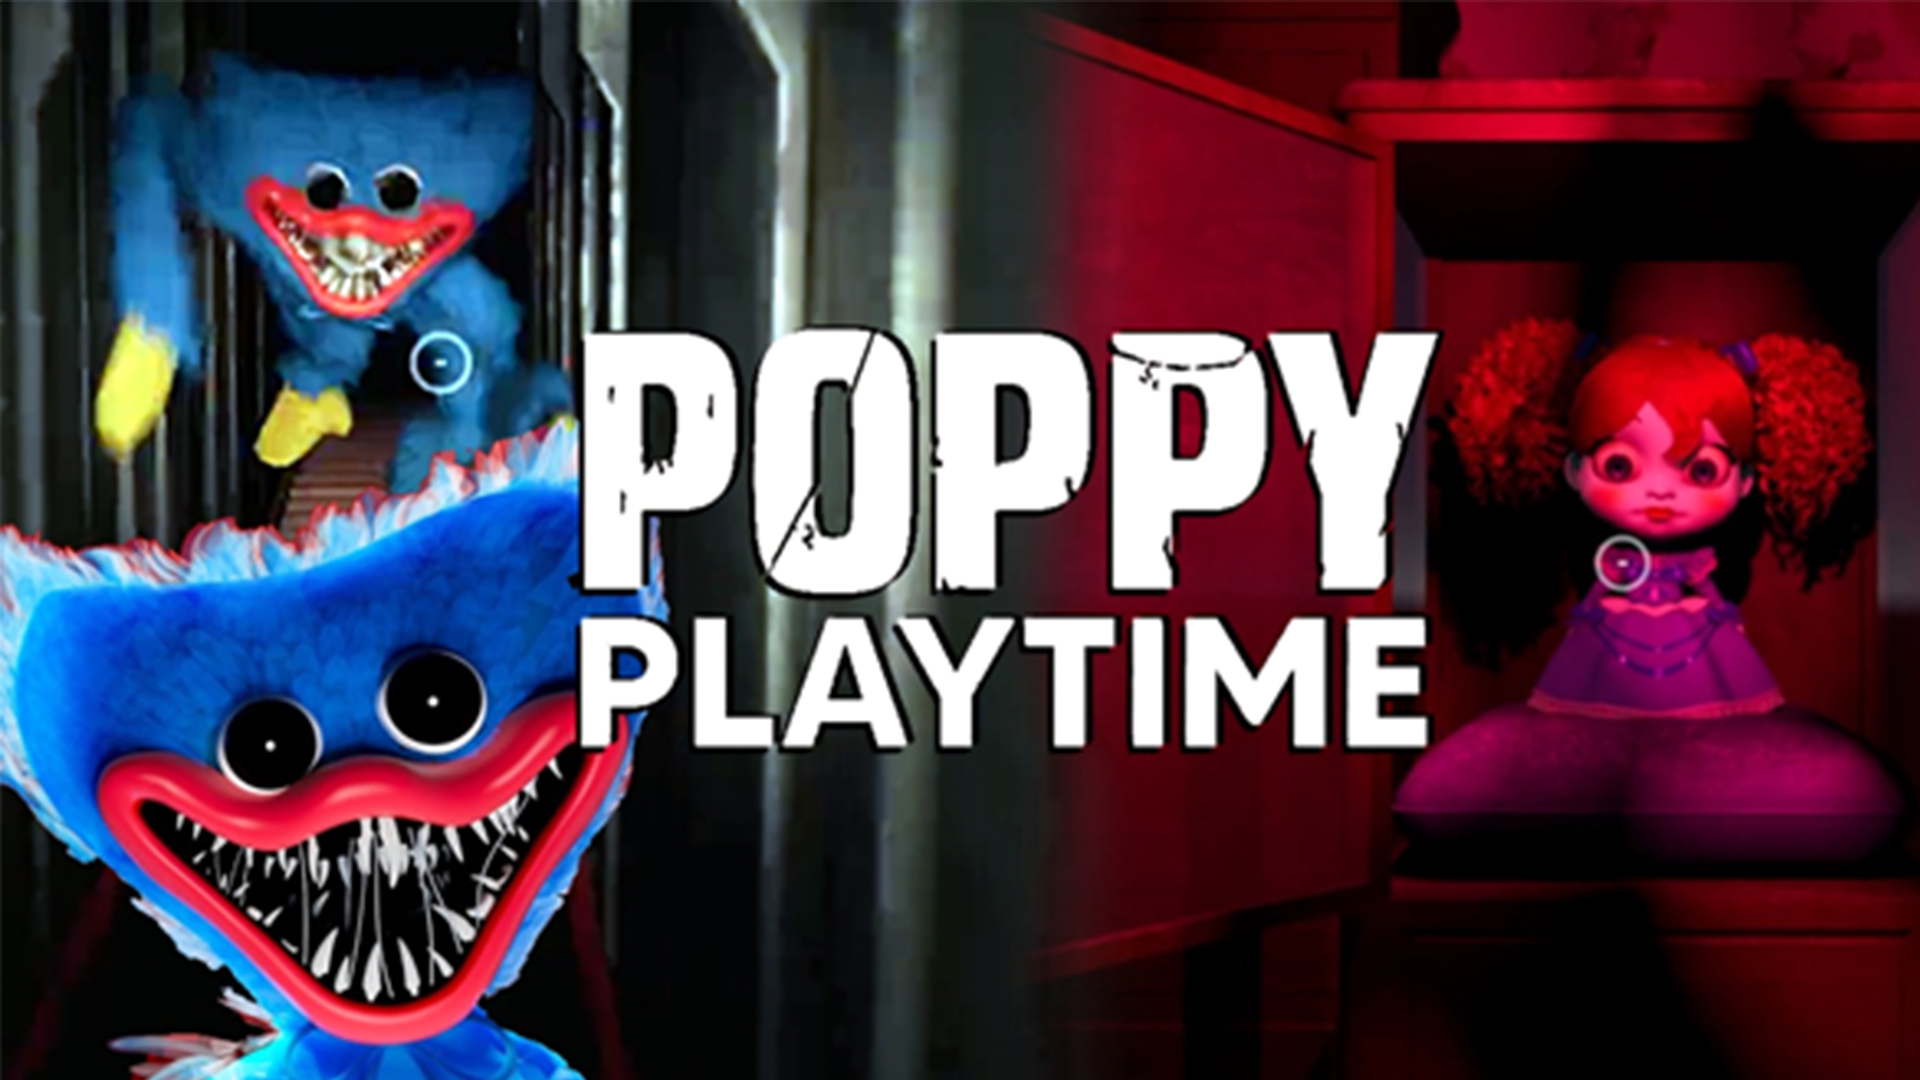 poppy playtime review